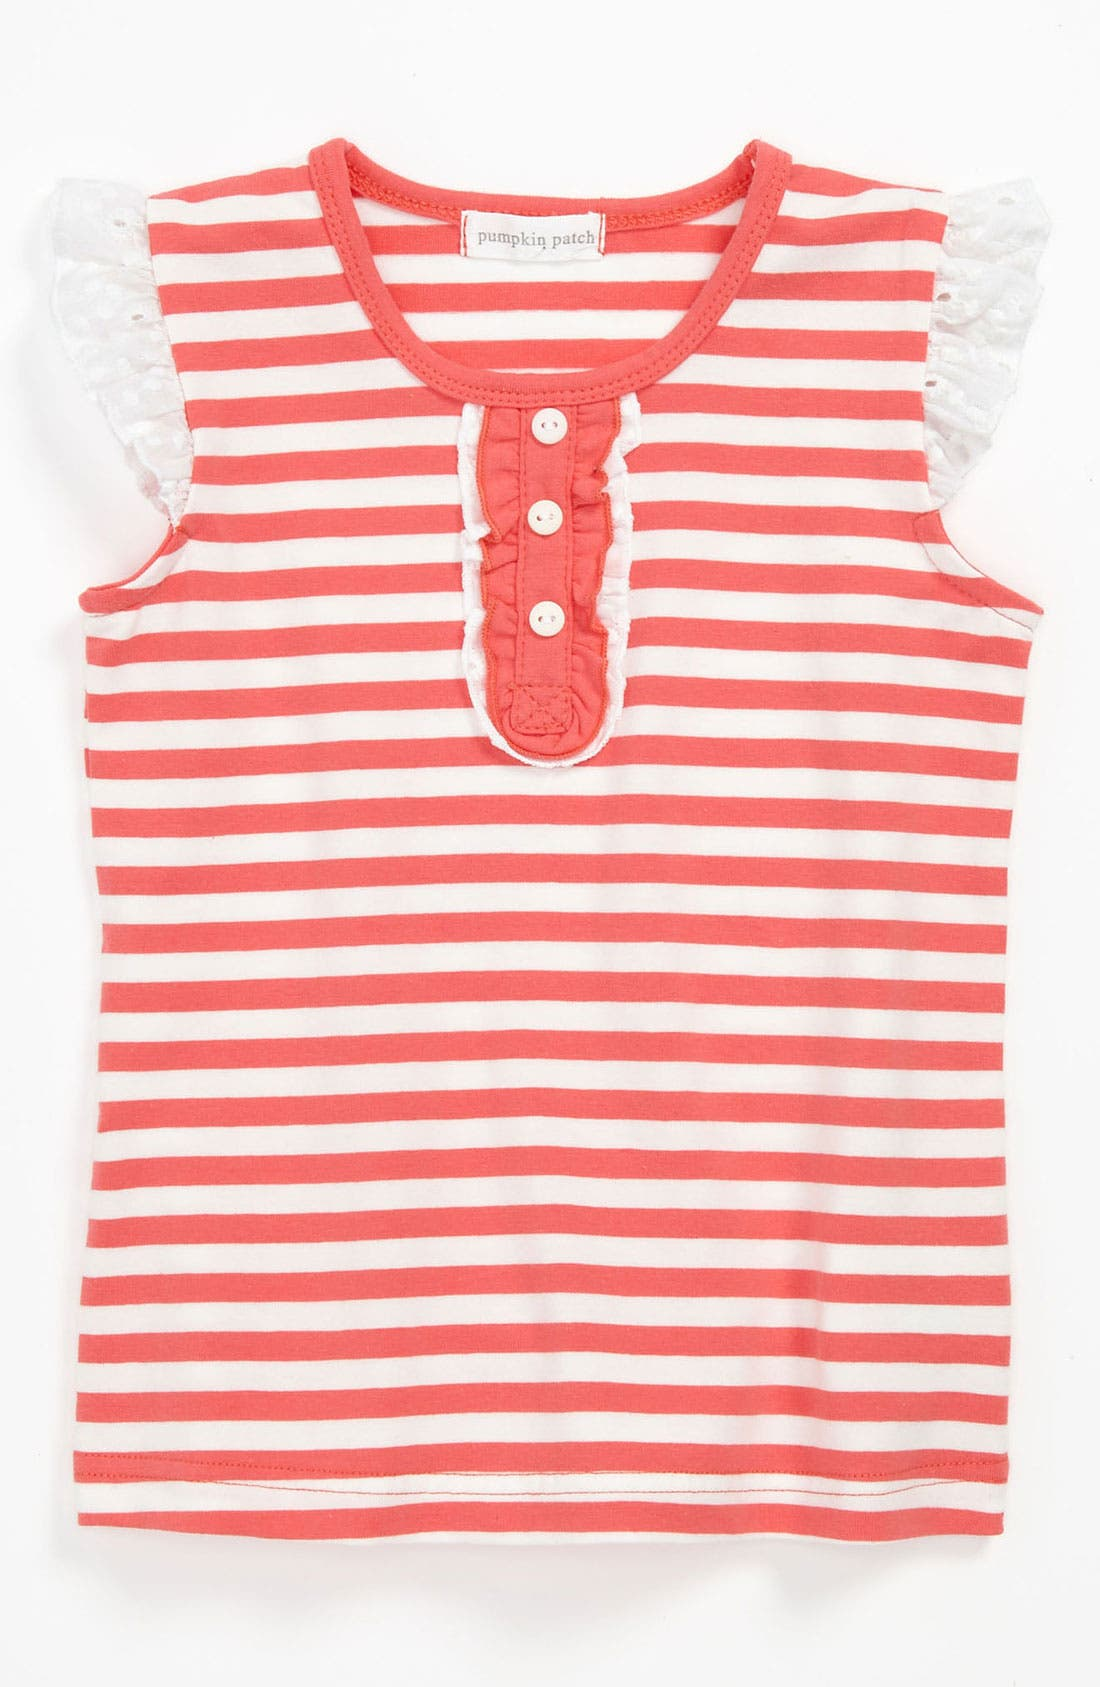 Main Image - Pumpkin Patch Skinny Stripe Top (Toddler)